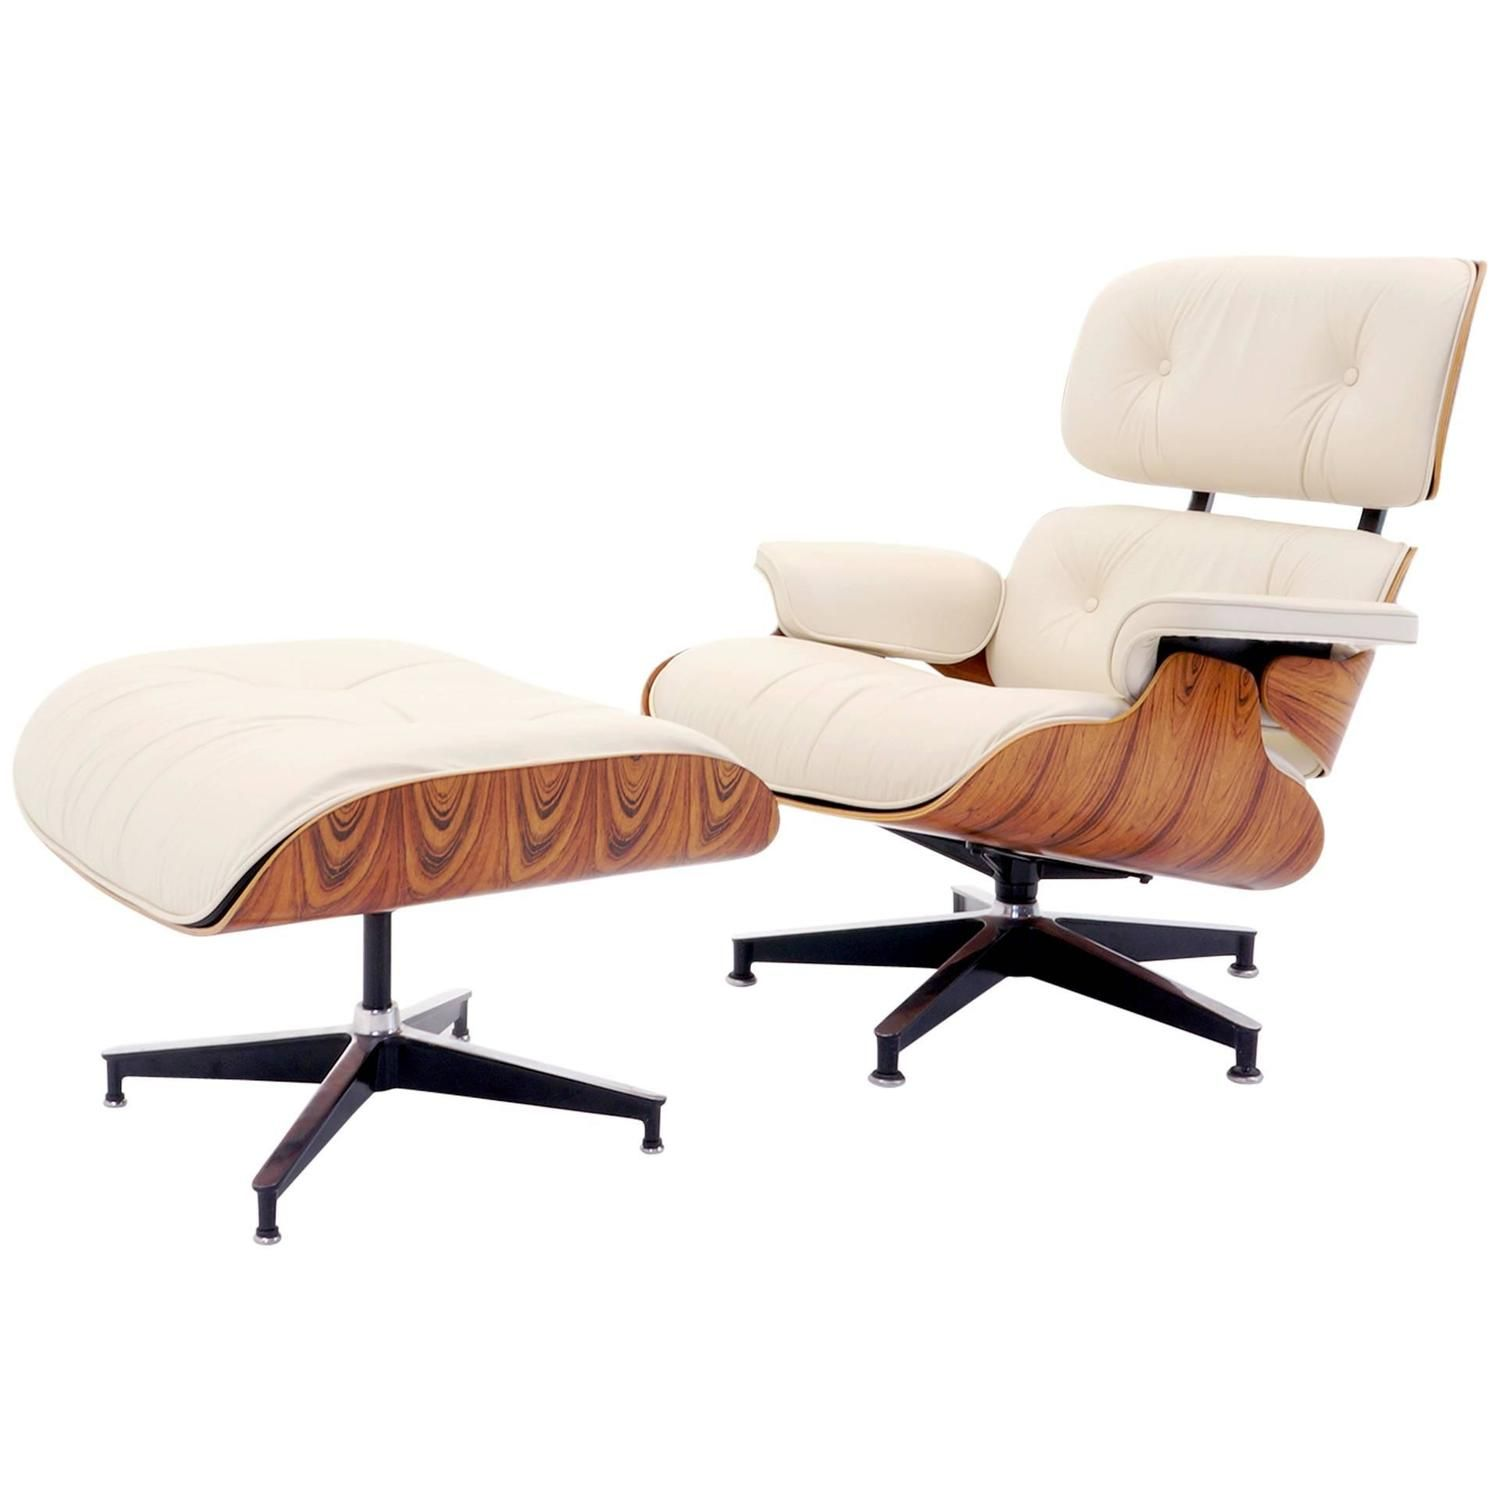 Vintage Rosewood Eames Lounge Chair And Ottoman With New Herman Miller Cushions 1stdibs Com Eames Lounge Chair Lounge Chair Chair And Ottoman